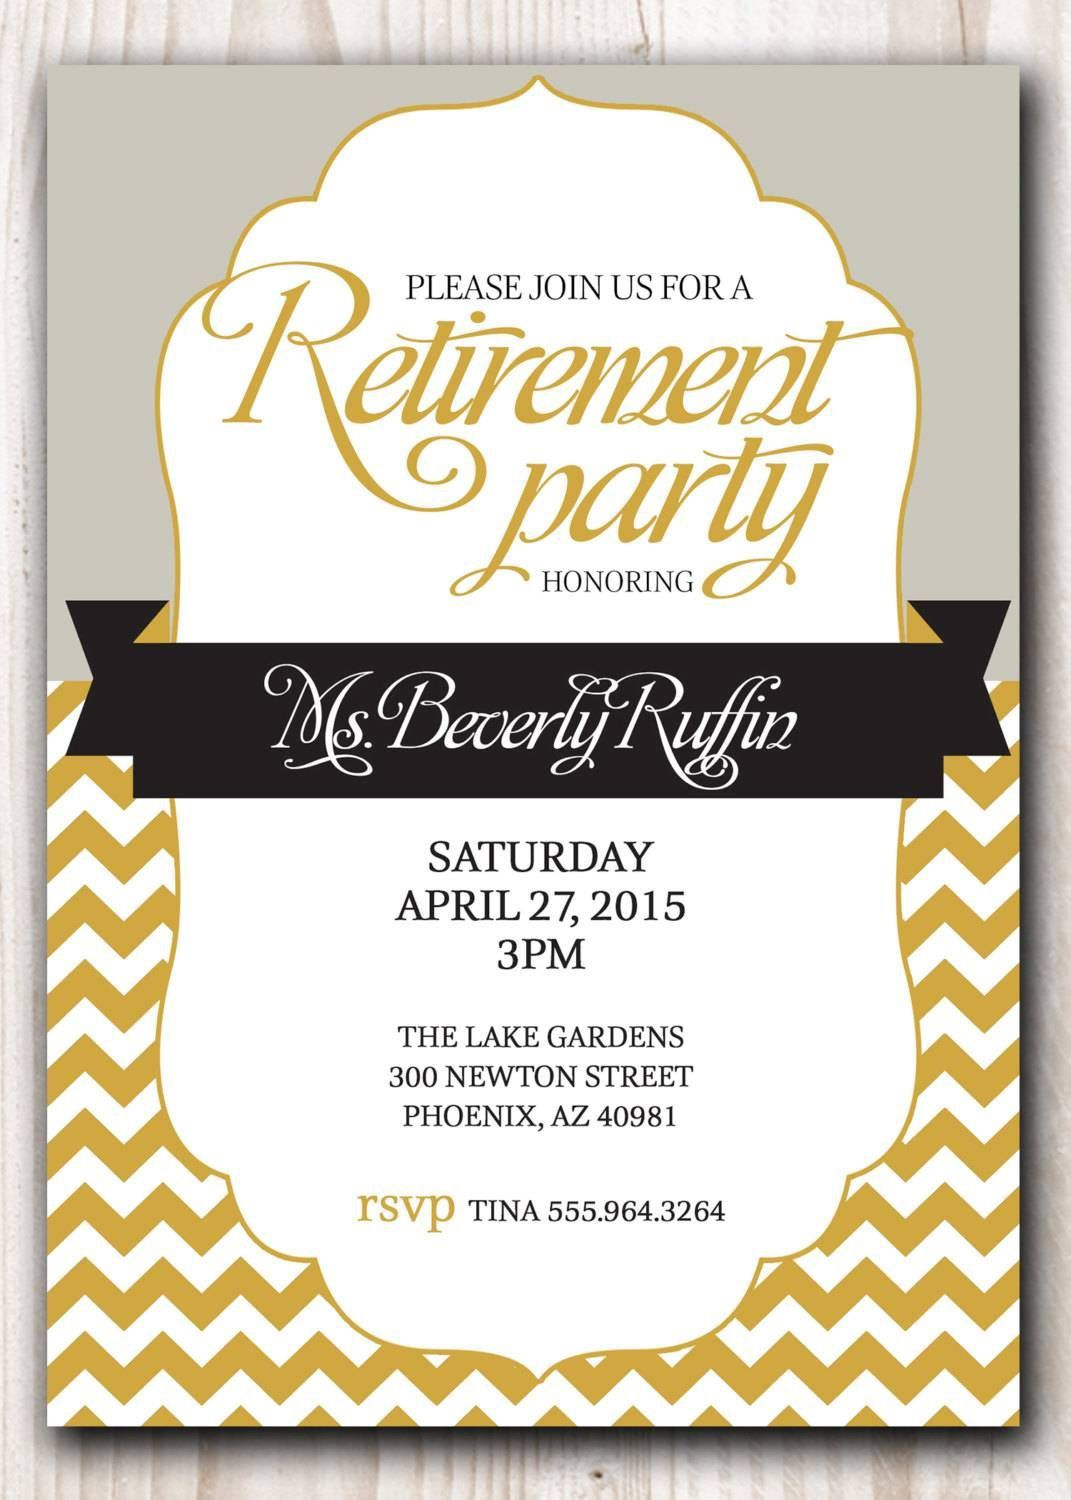 008 Staggering Retirement Party Invite Template High Resolution  Invitation Online M Word FreeFull